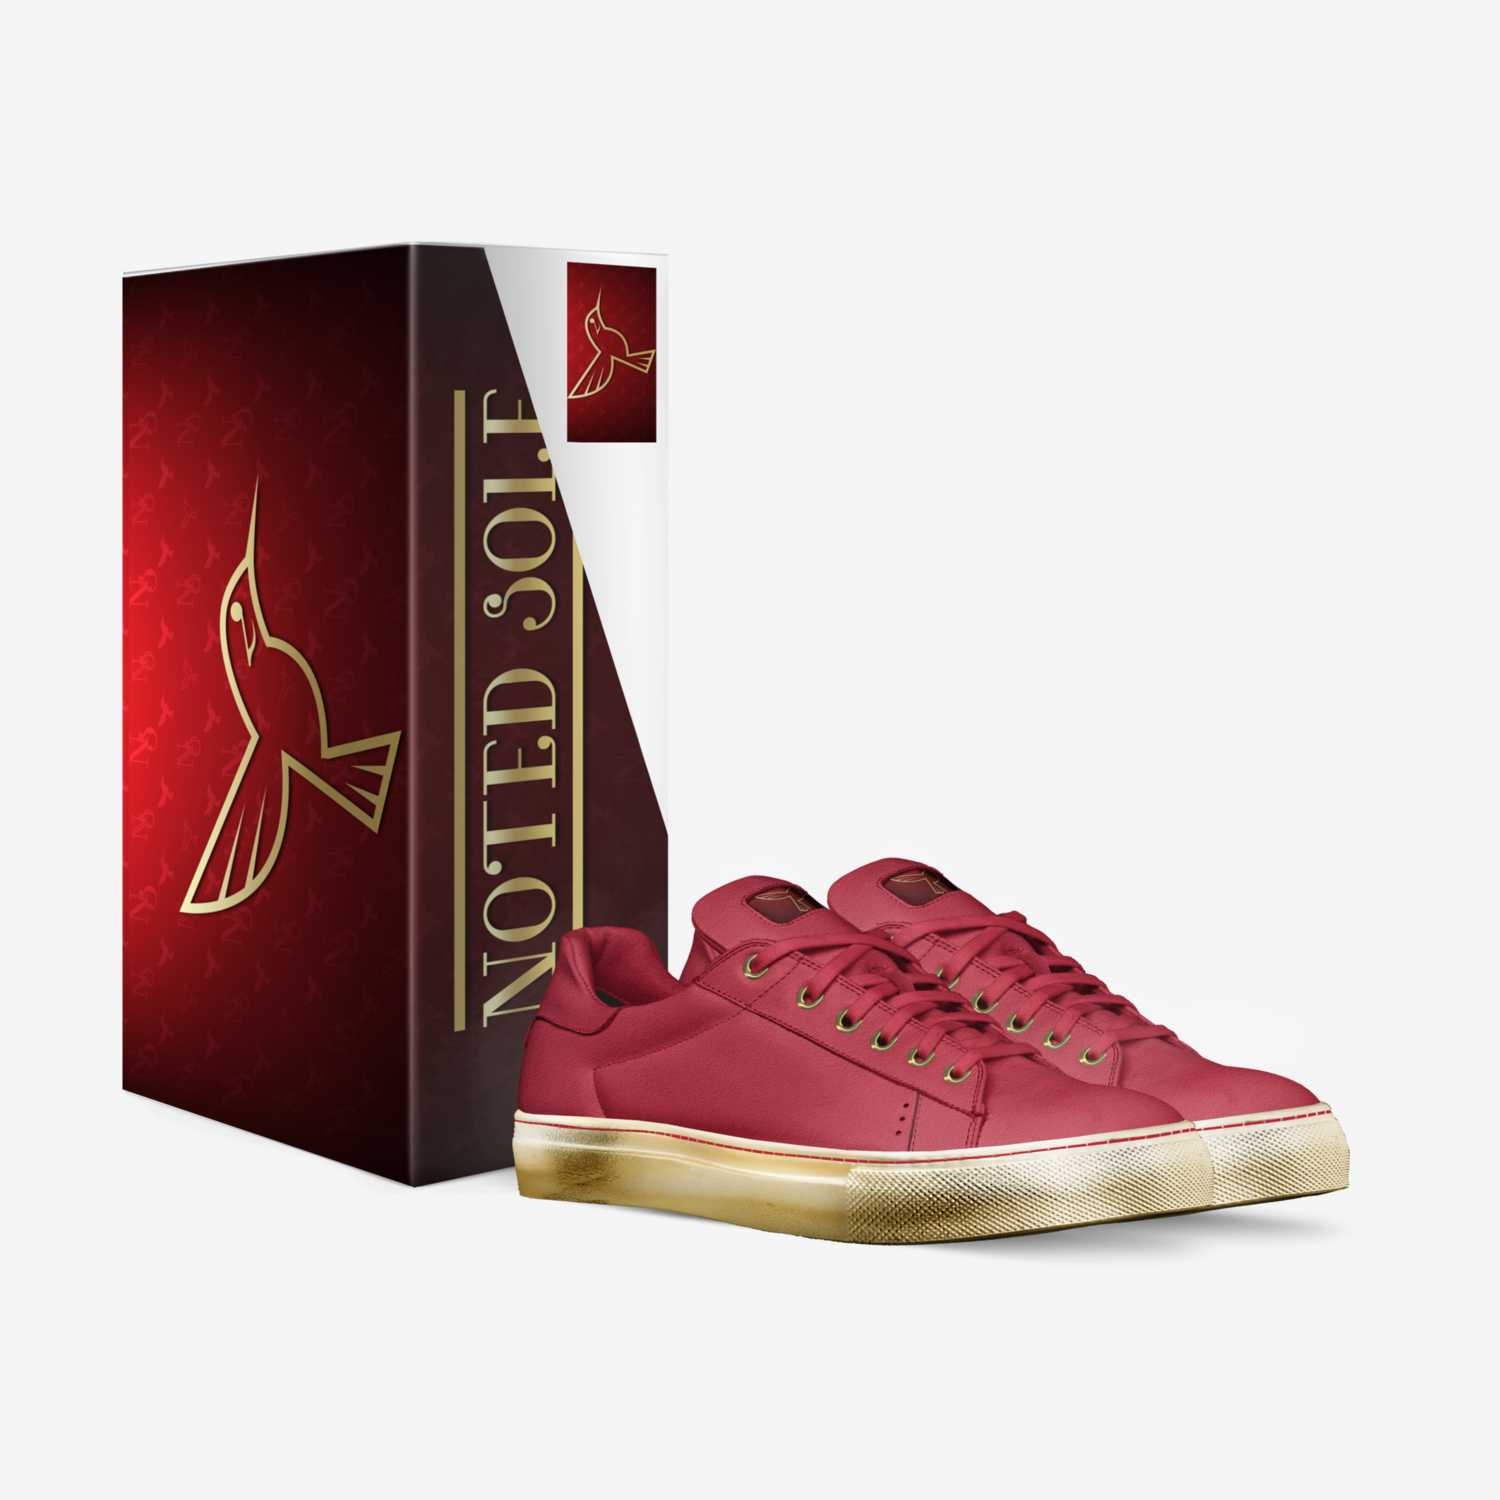 Ruby Sole custom made in Italy shoes by Marcus Brooks | Box view